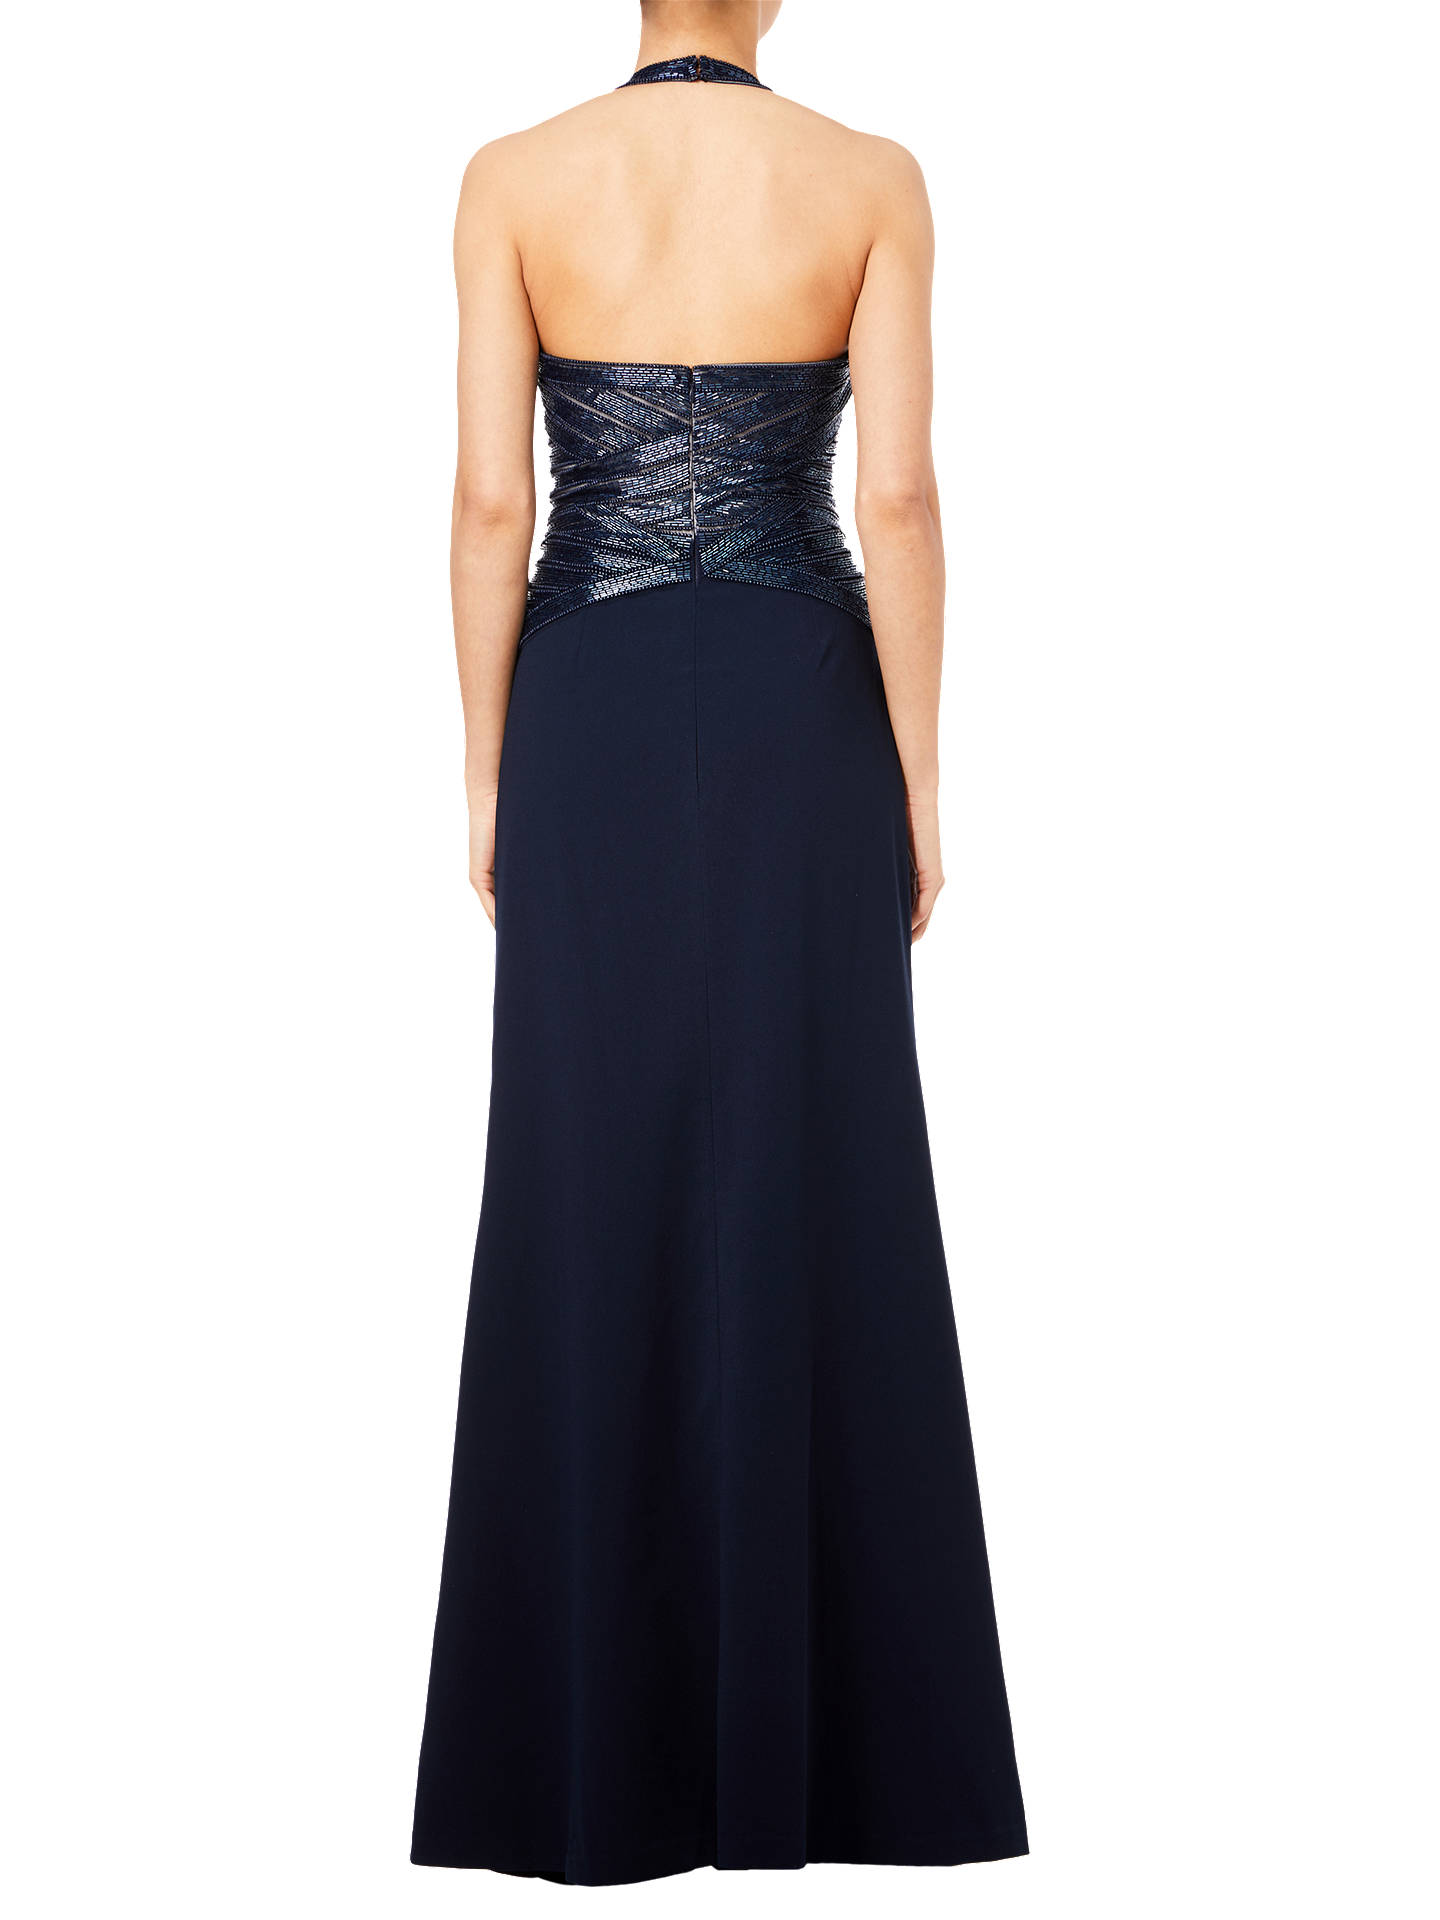 BuyAdrianna Papell Beaded Halterneck Dress, Midnight, 8 Online at johnlewis.com